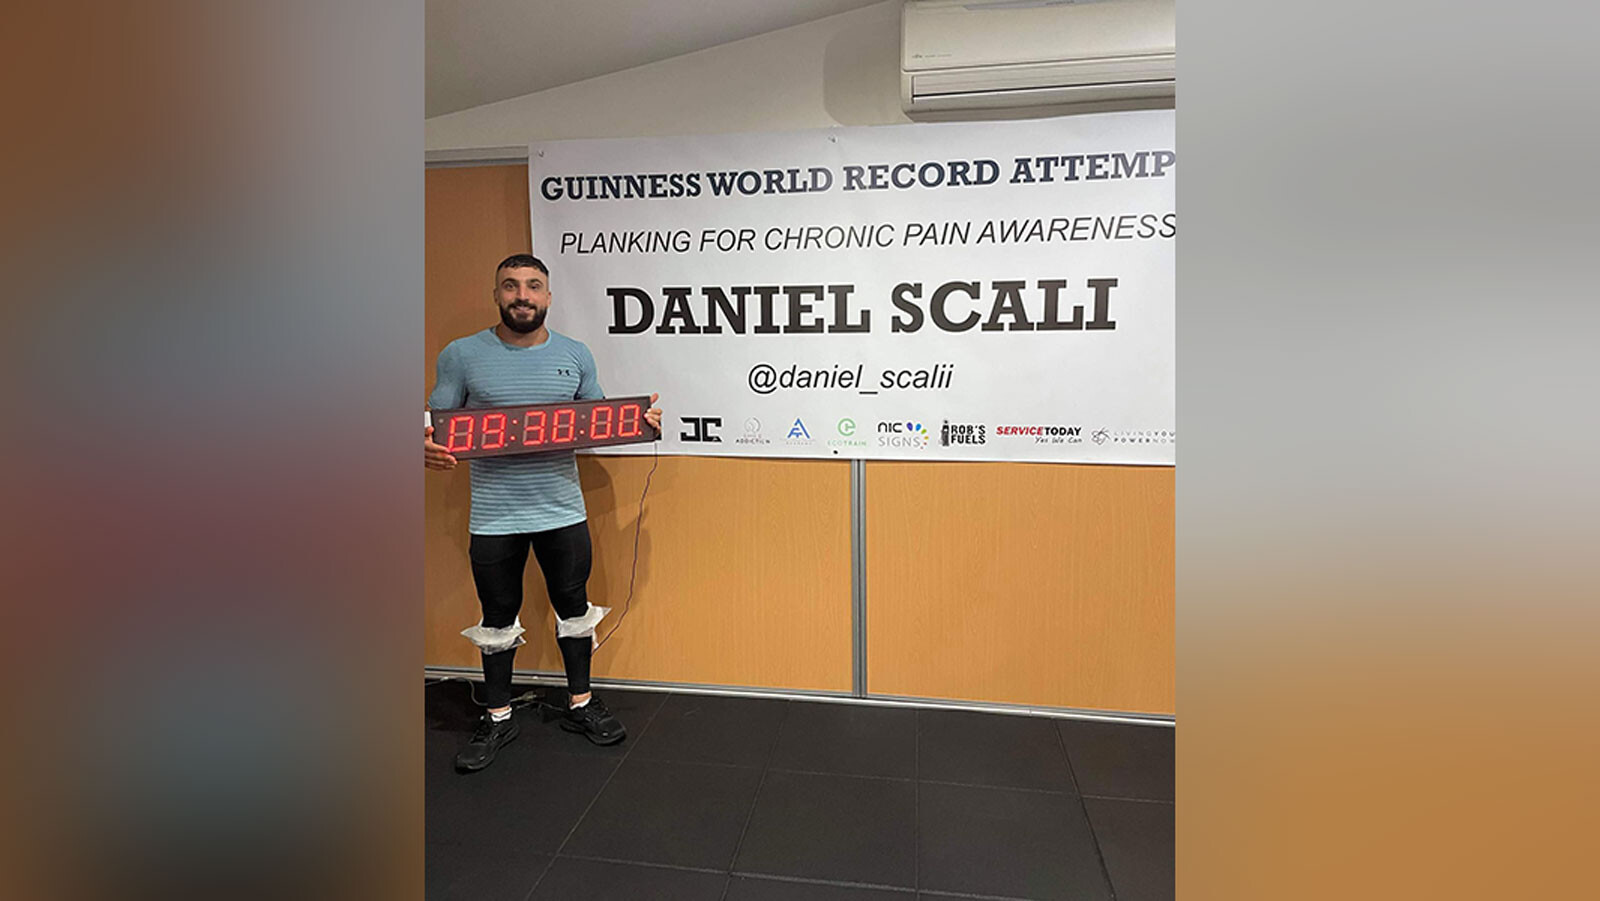 Australian man with chronic pain sets world record by holding plank for over 9 hours